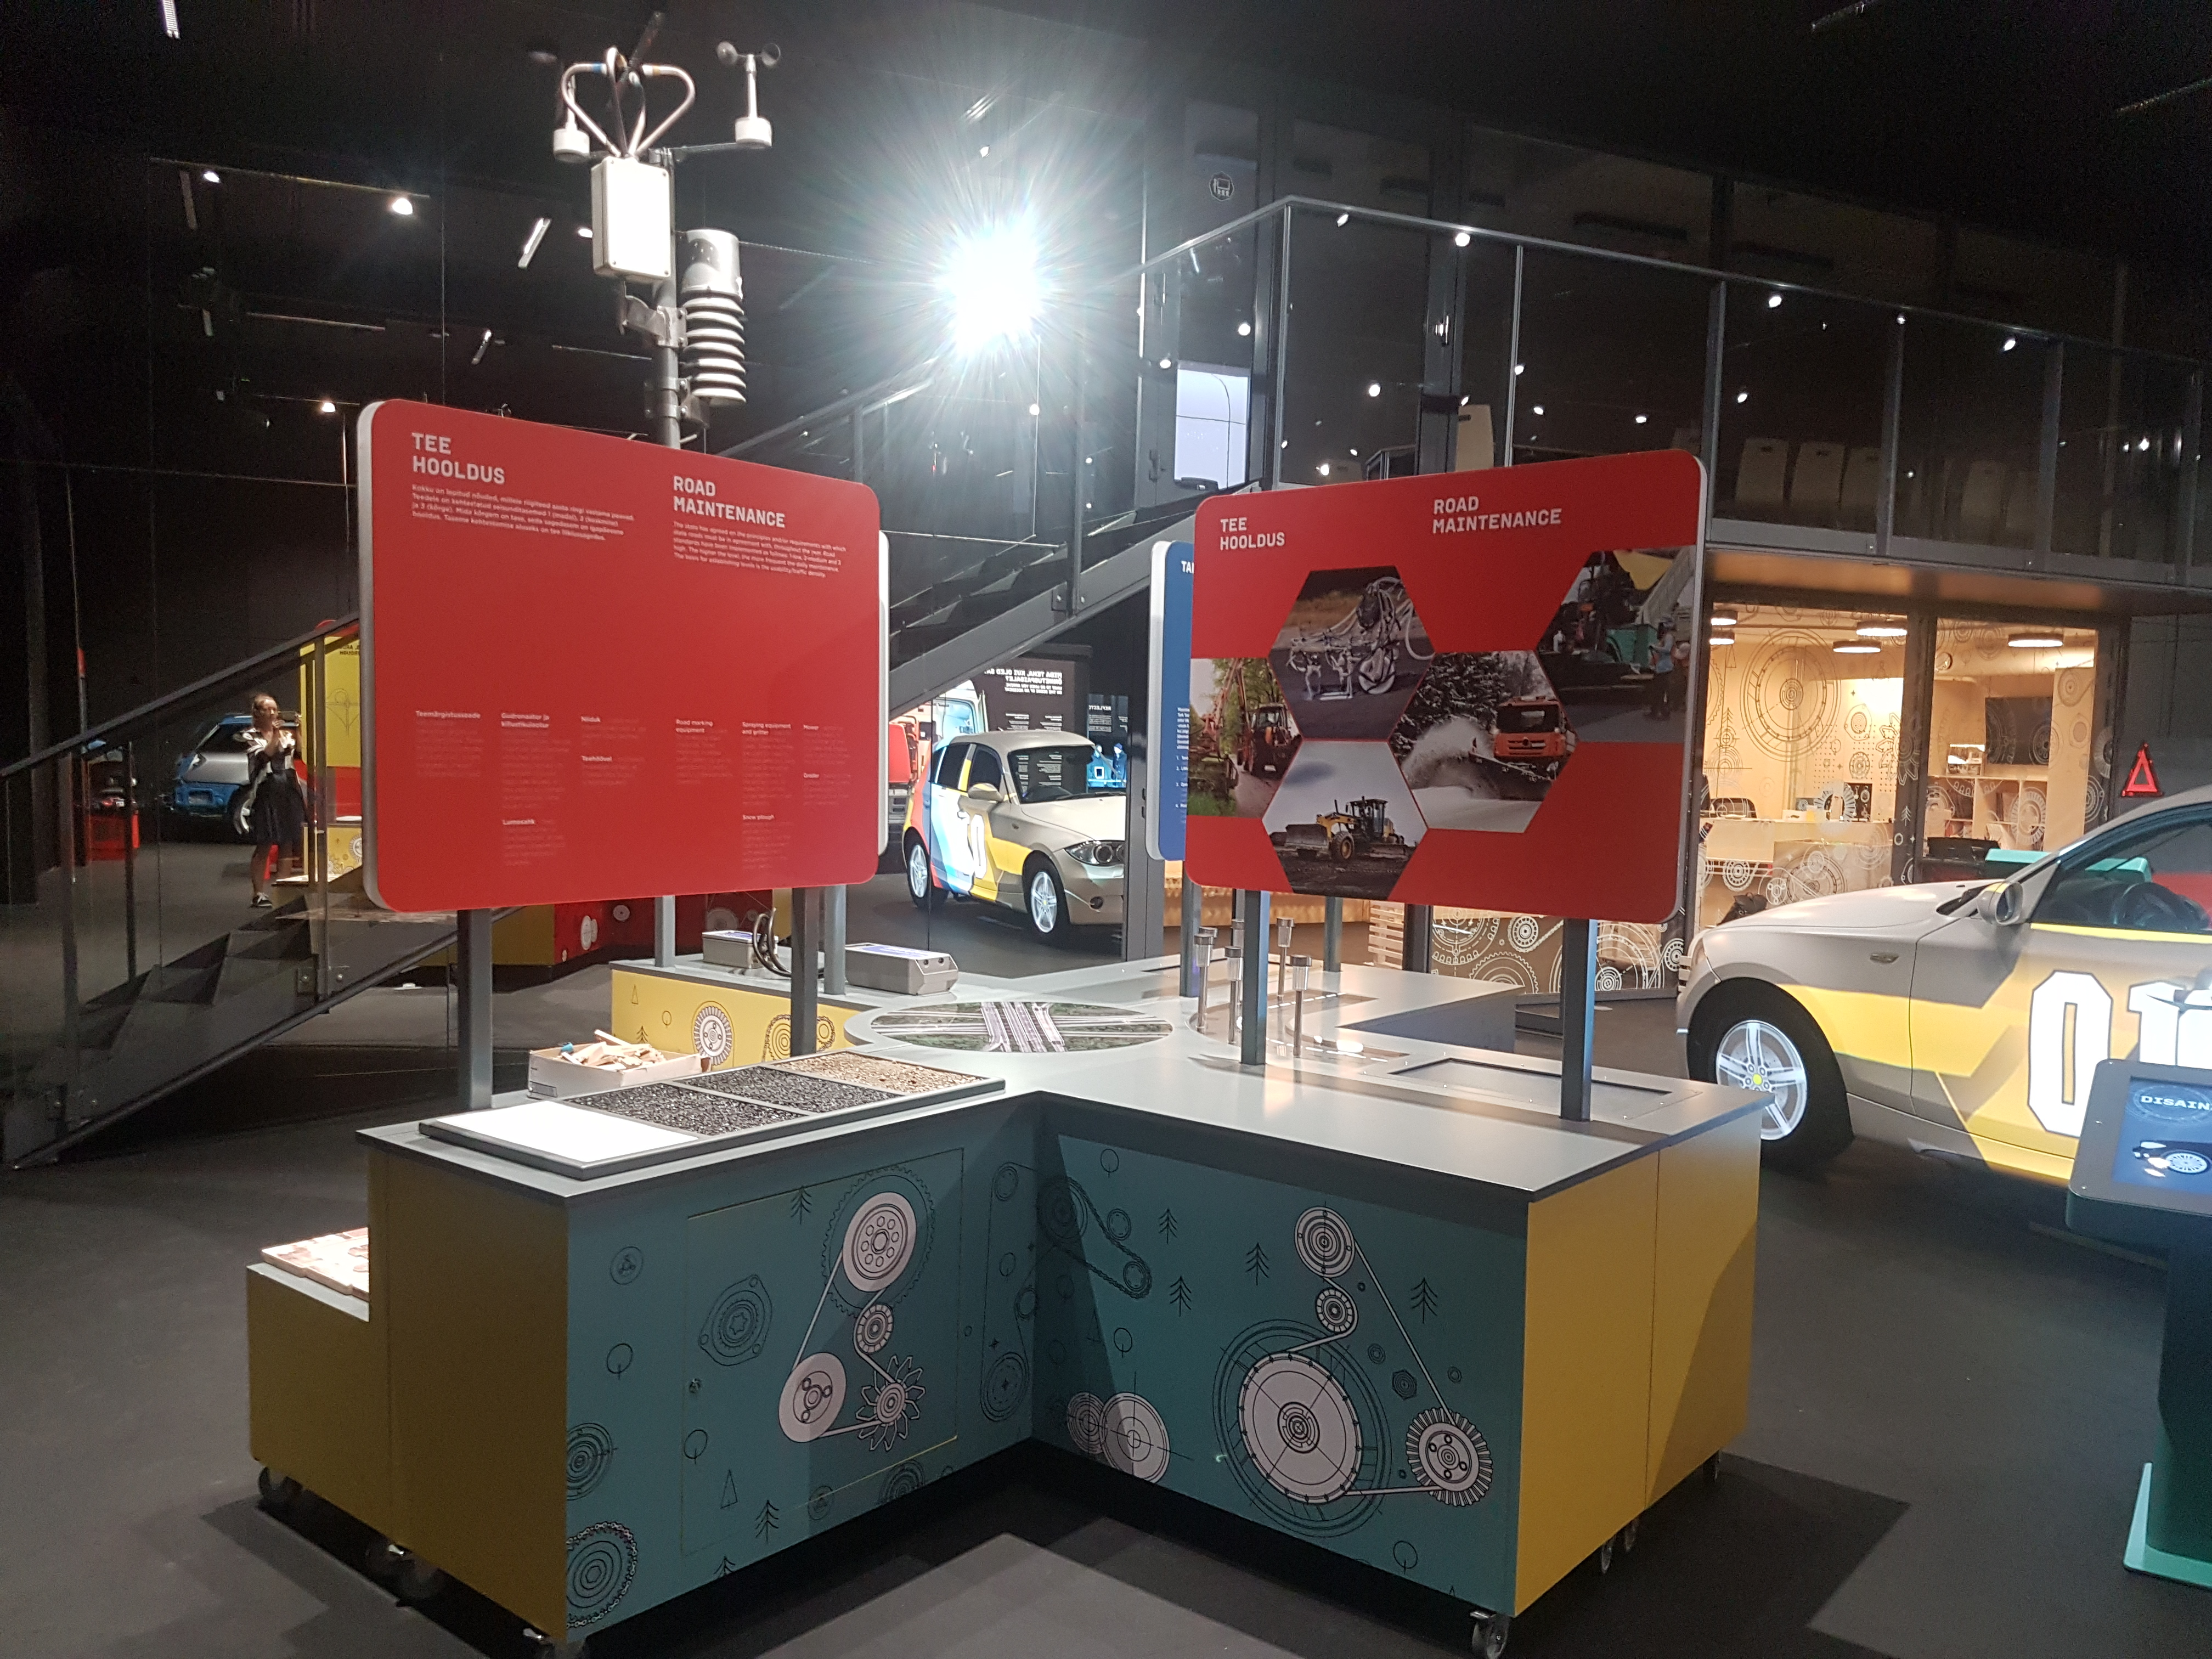 Machinery hall presentation of the exhibition